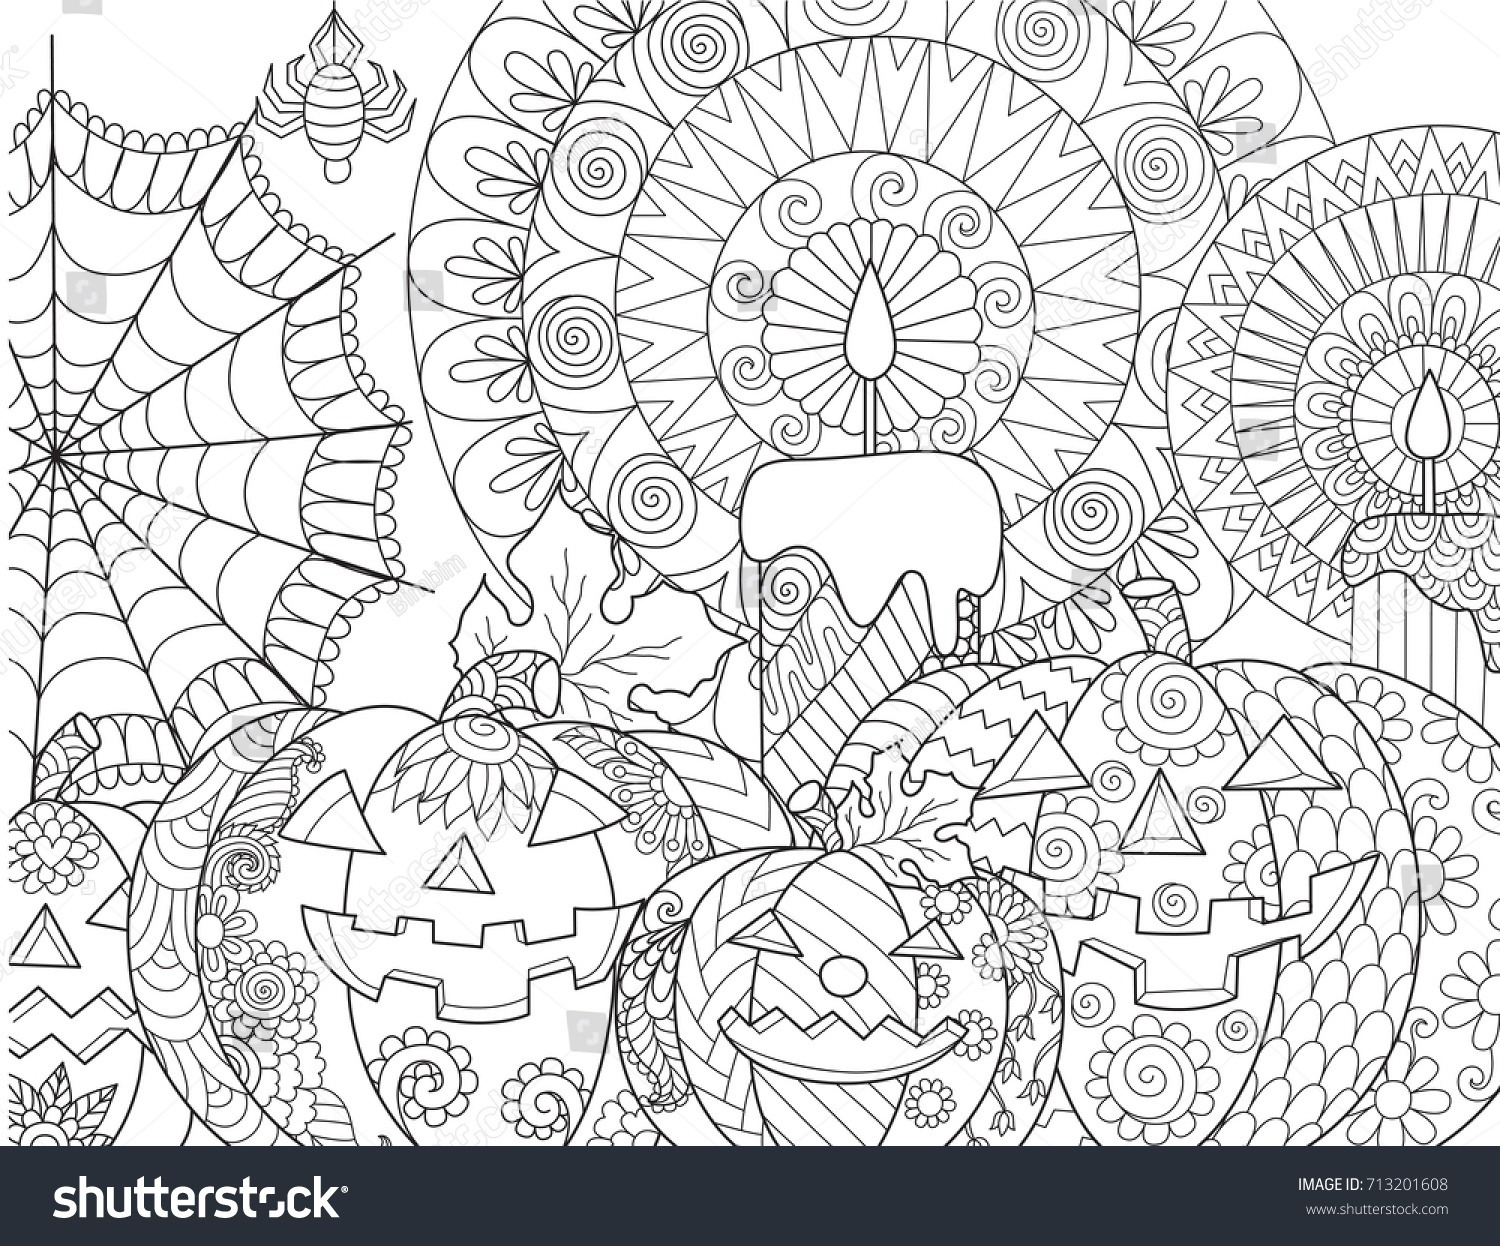 Halloween Pumpkincandlesspidercobweb Adult Coloring Book Page